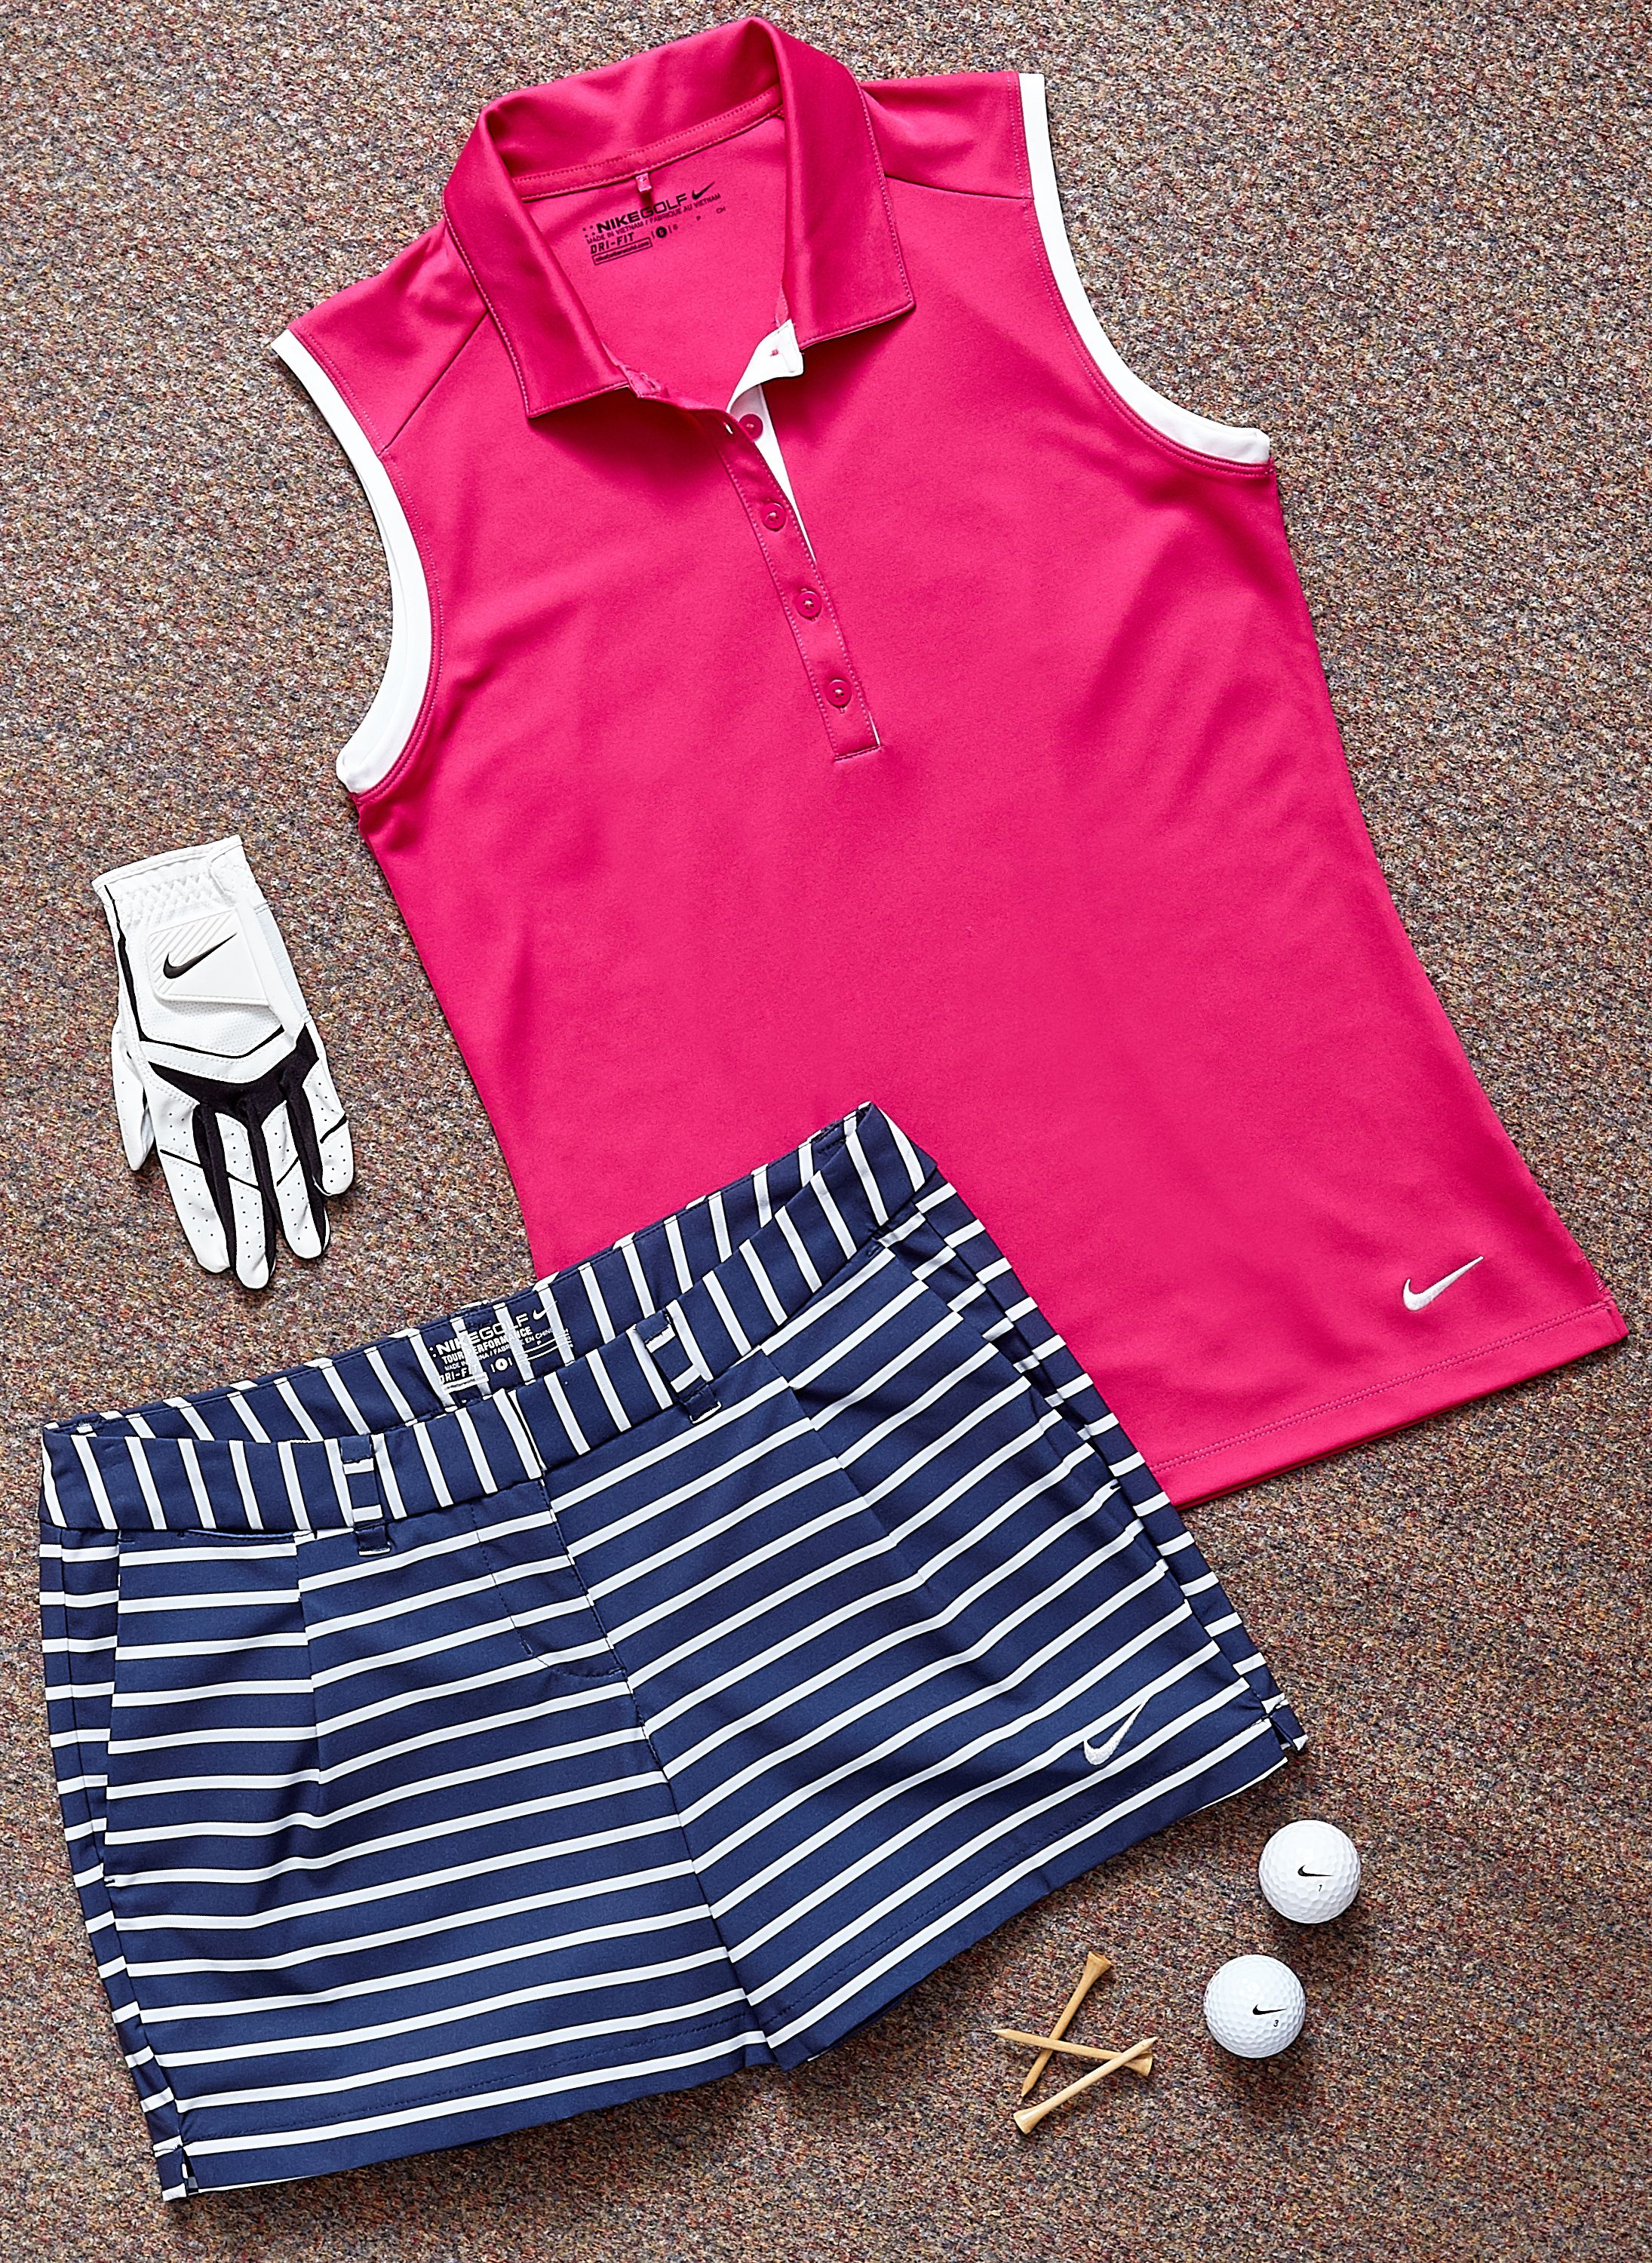 nike golf pants mens adidas tennis clothes for women